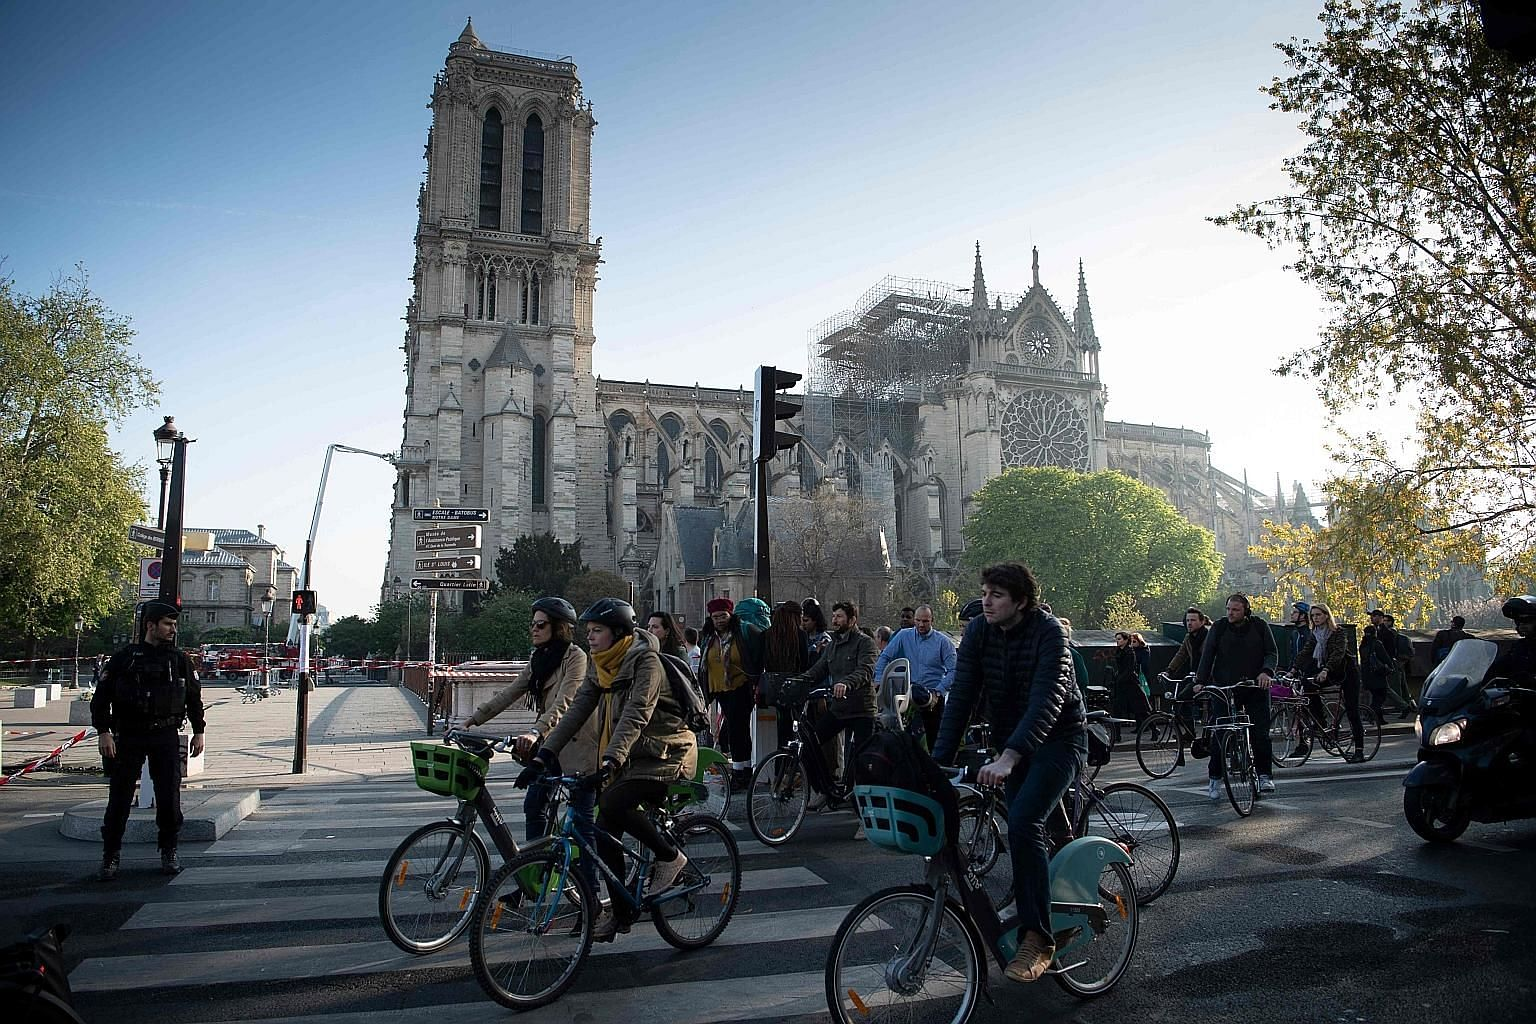 Notre-Dame in the aftermath of Monday's fire. Without any evidence suggesting arson, some pundits have concluded that the blaze must have been the work of Islamists or leftists, says the writer. The authorities do not suspect foul play but are probin